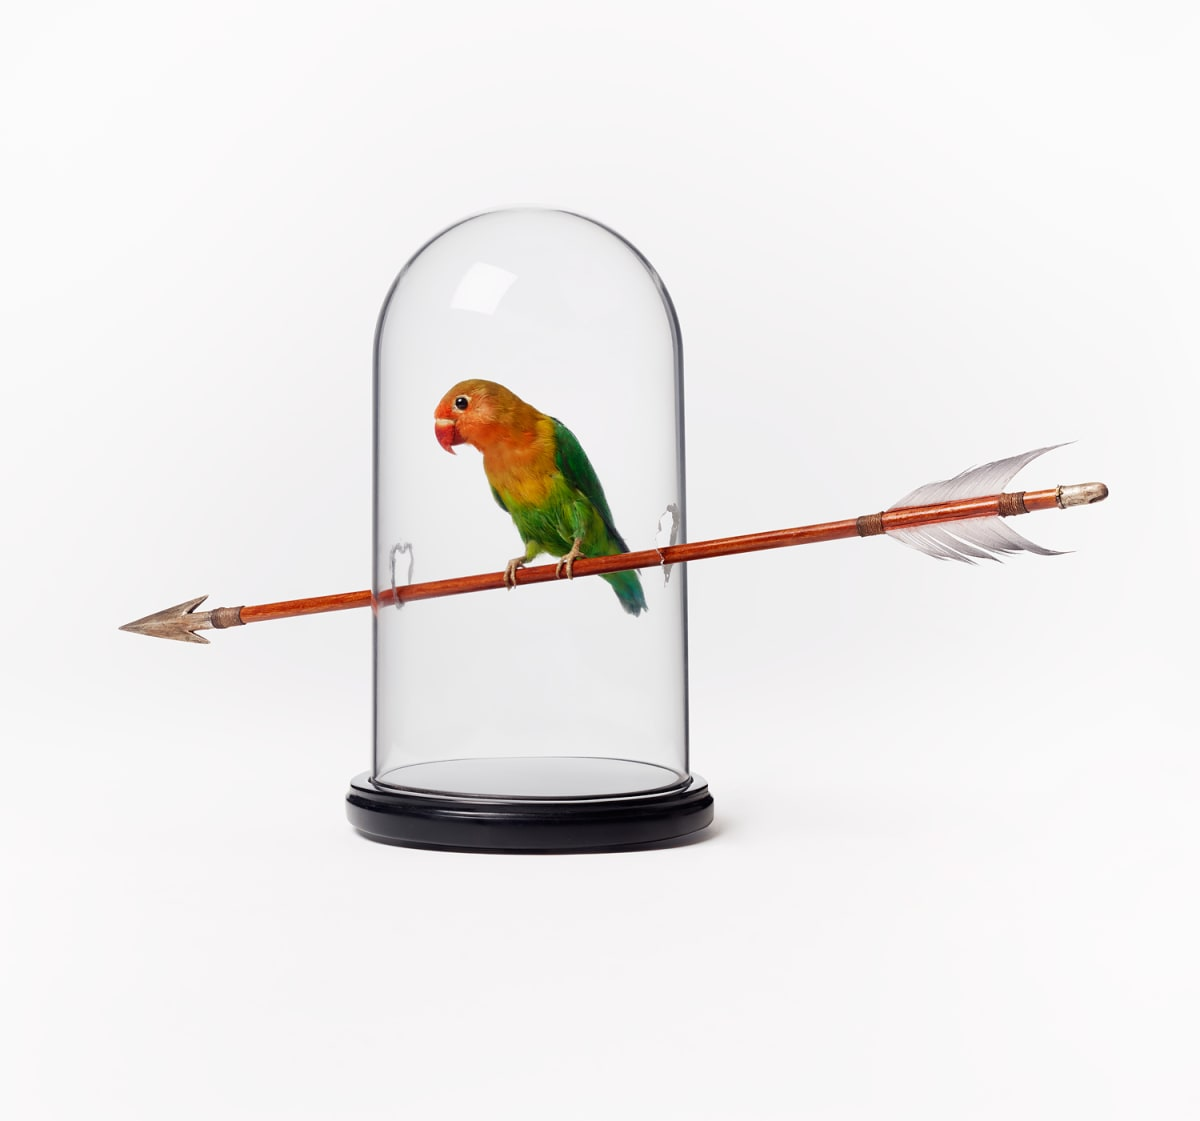 Nancy FOUTS, Bird on Arrow, 2013